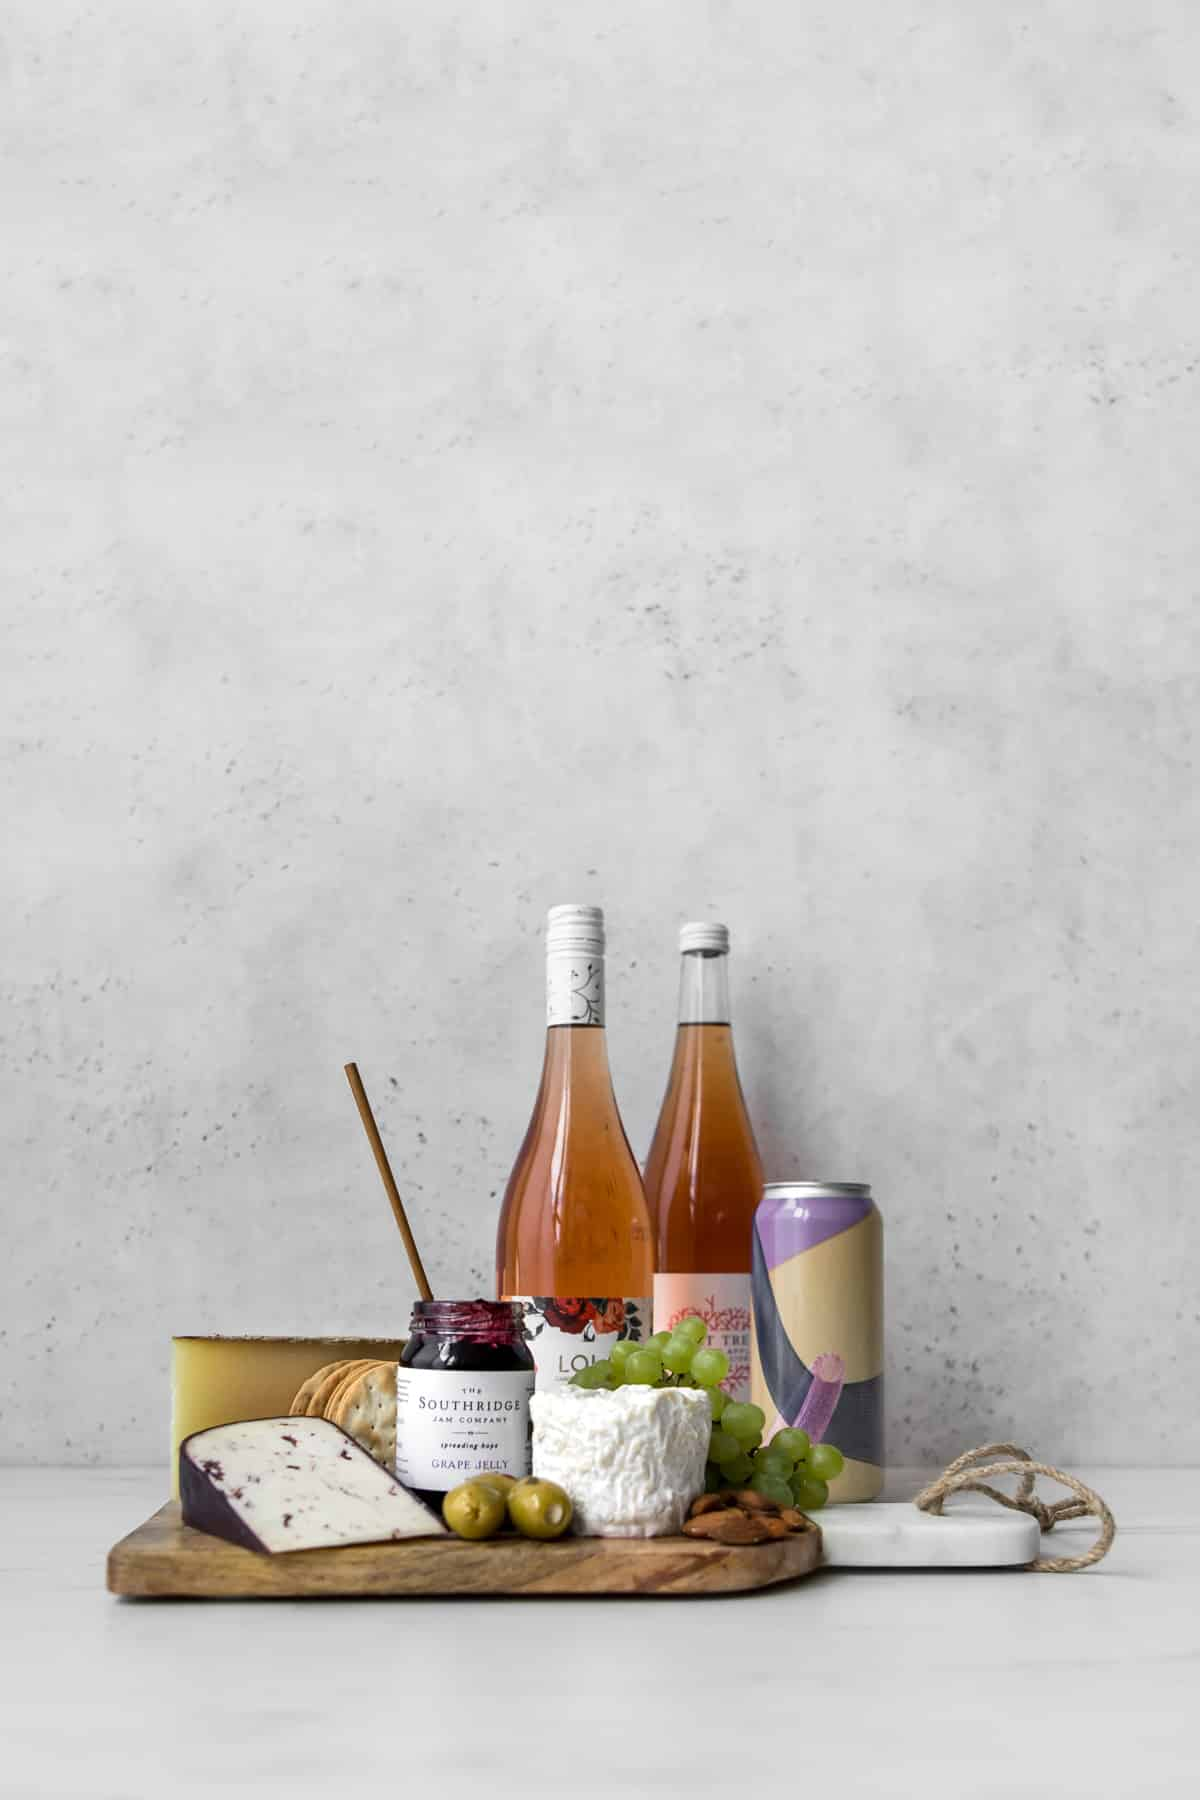 Wine, beer and cider bottles behind a cheeseboard